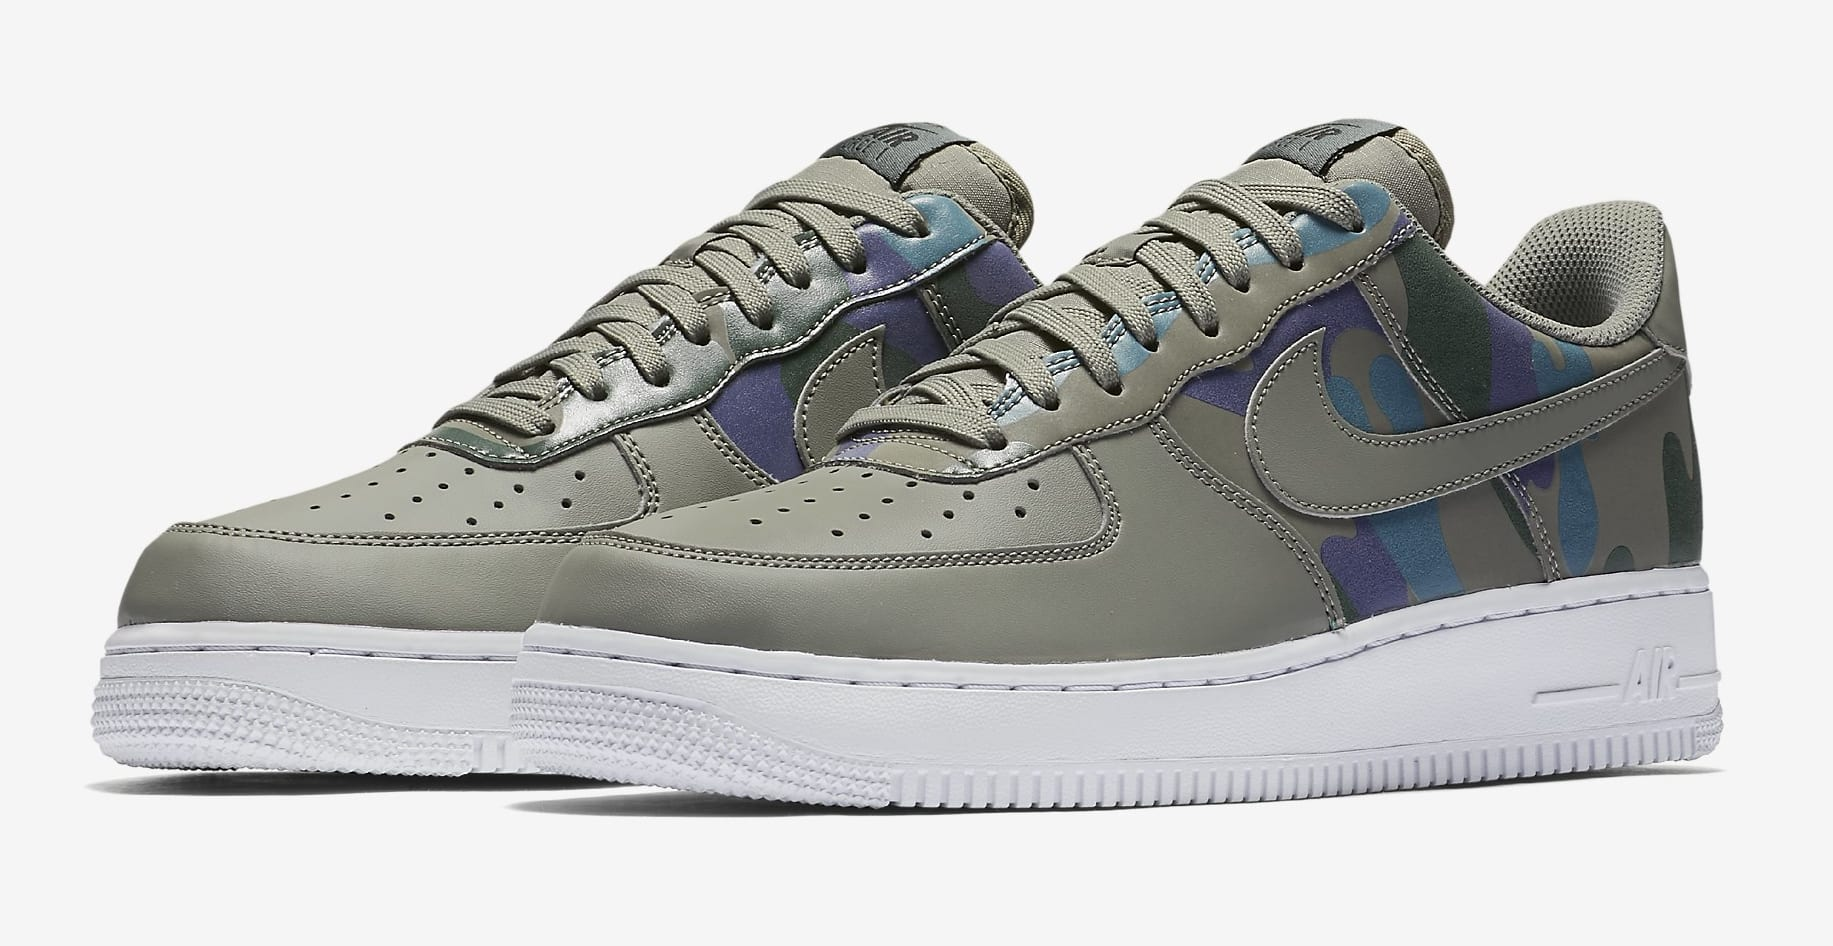 Nike Air Force 1 Low 'Country Camo' 823511-008 (Pair)